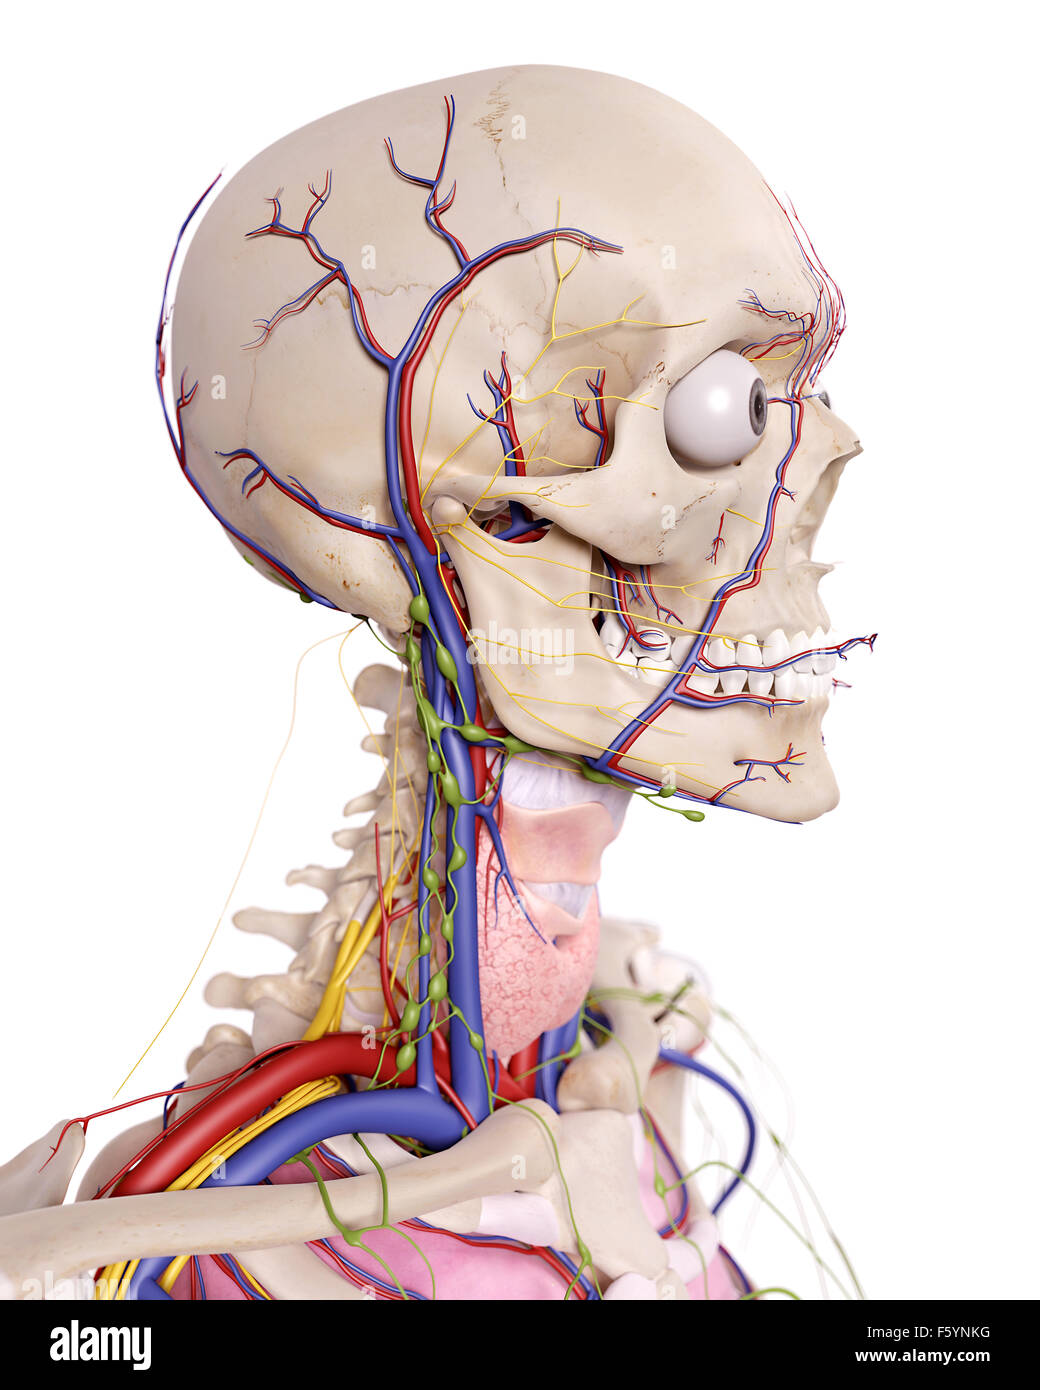 Head Neck Gland Stock Photos & Head Neck Gland Stock Images - Alamy